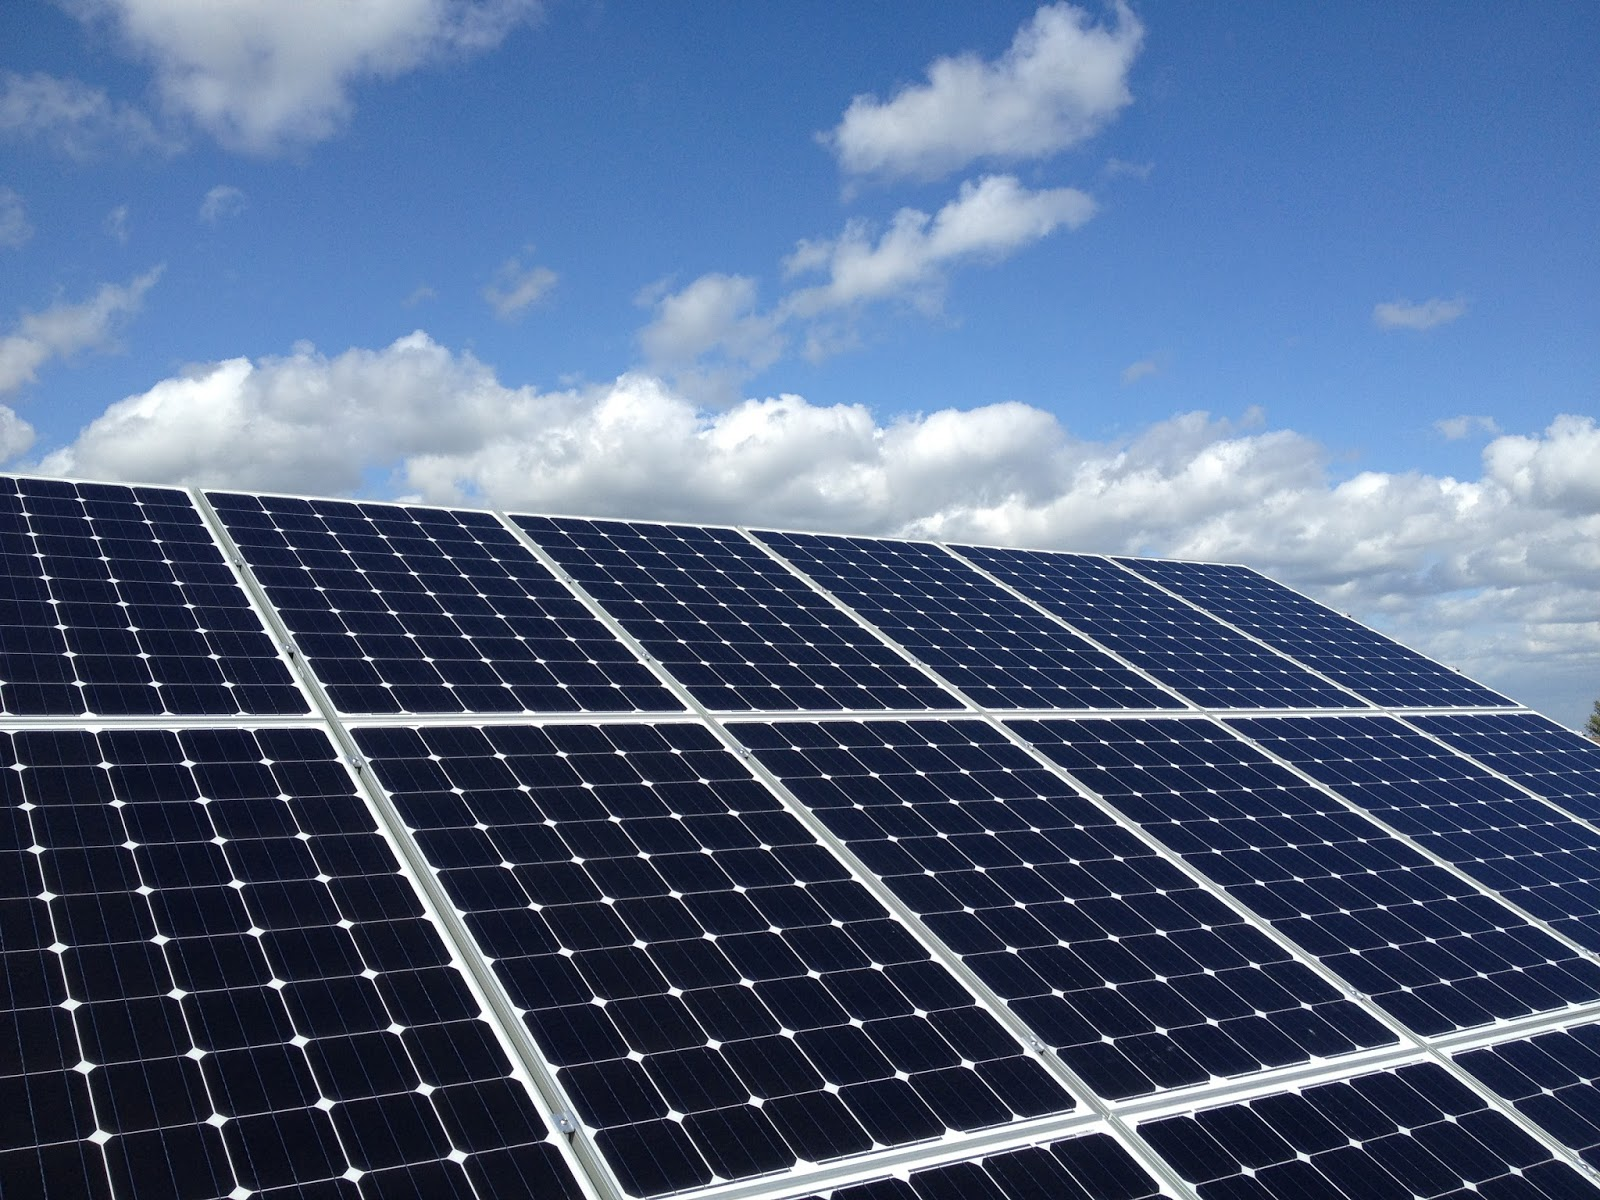 Solar Pv Systems Backup Power Ups Systems: LG Electronics Increases Production Of Solar PV Panels